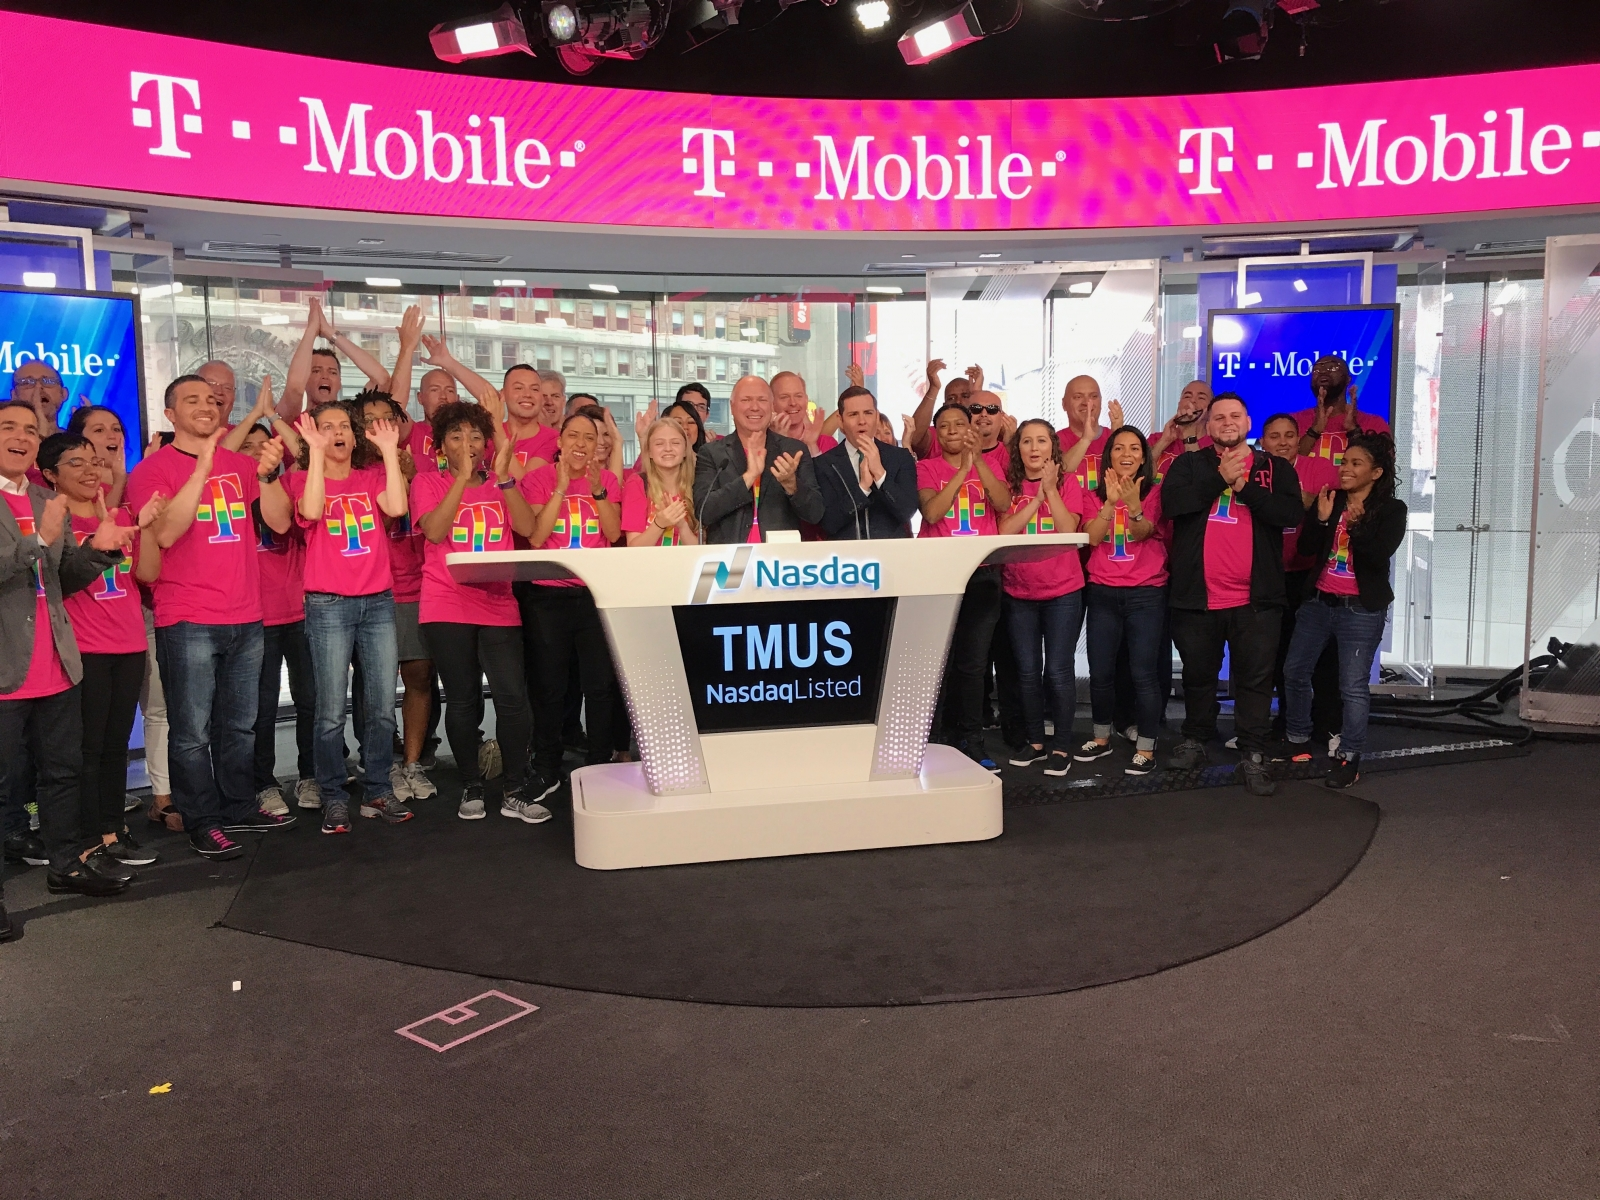 Tmobile Employee Searched Records For Customer's Number. School Locker Searches Auto Extended Warranty. What Is Identity And Access Management. Get Vinyl Stickers Made Complex Care Solutions. Card Printing Companies Ira Certificate Rates. Commercial Auto Loan Rates Home Mortgage Com. Online Masters Degree Project Management. Hipaa Compliant Texting What Does Abarth Mean. Moving Companies Shreveport La